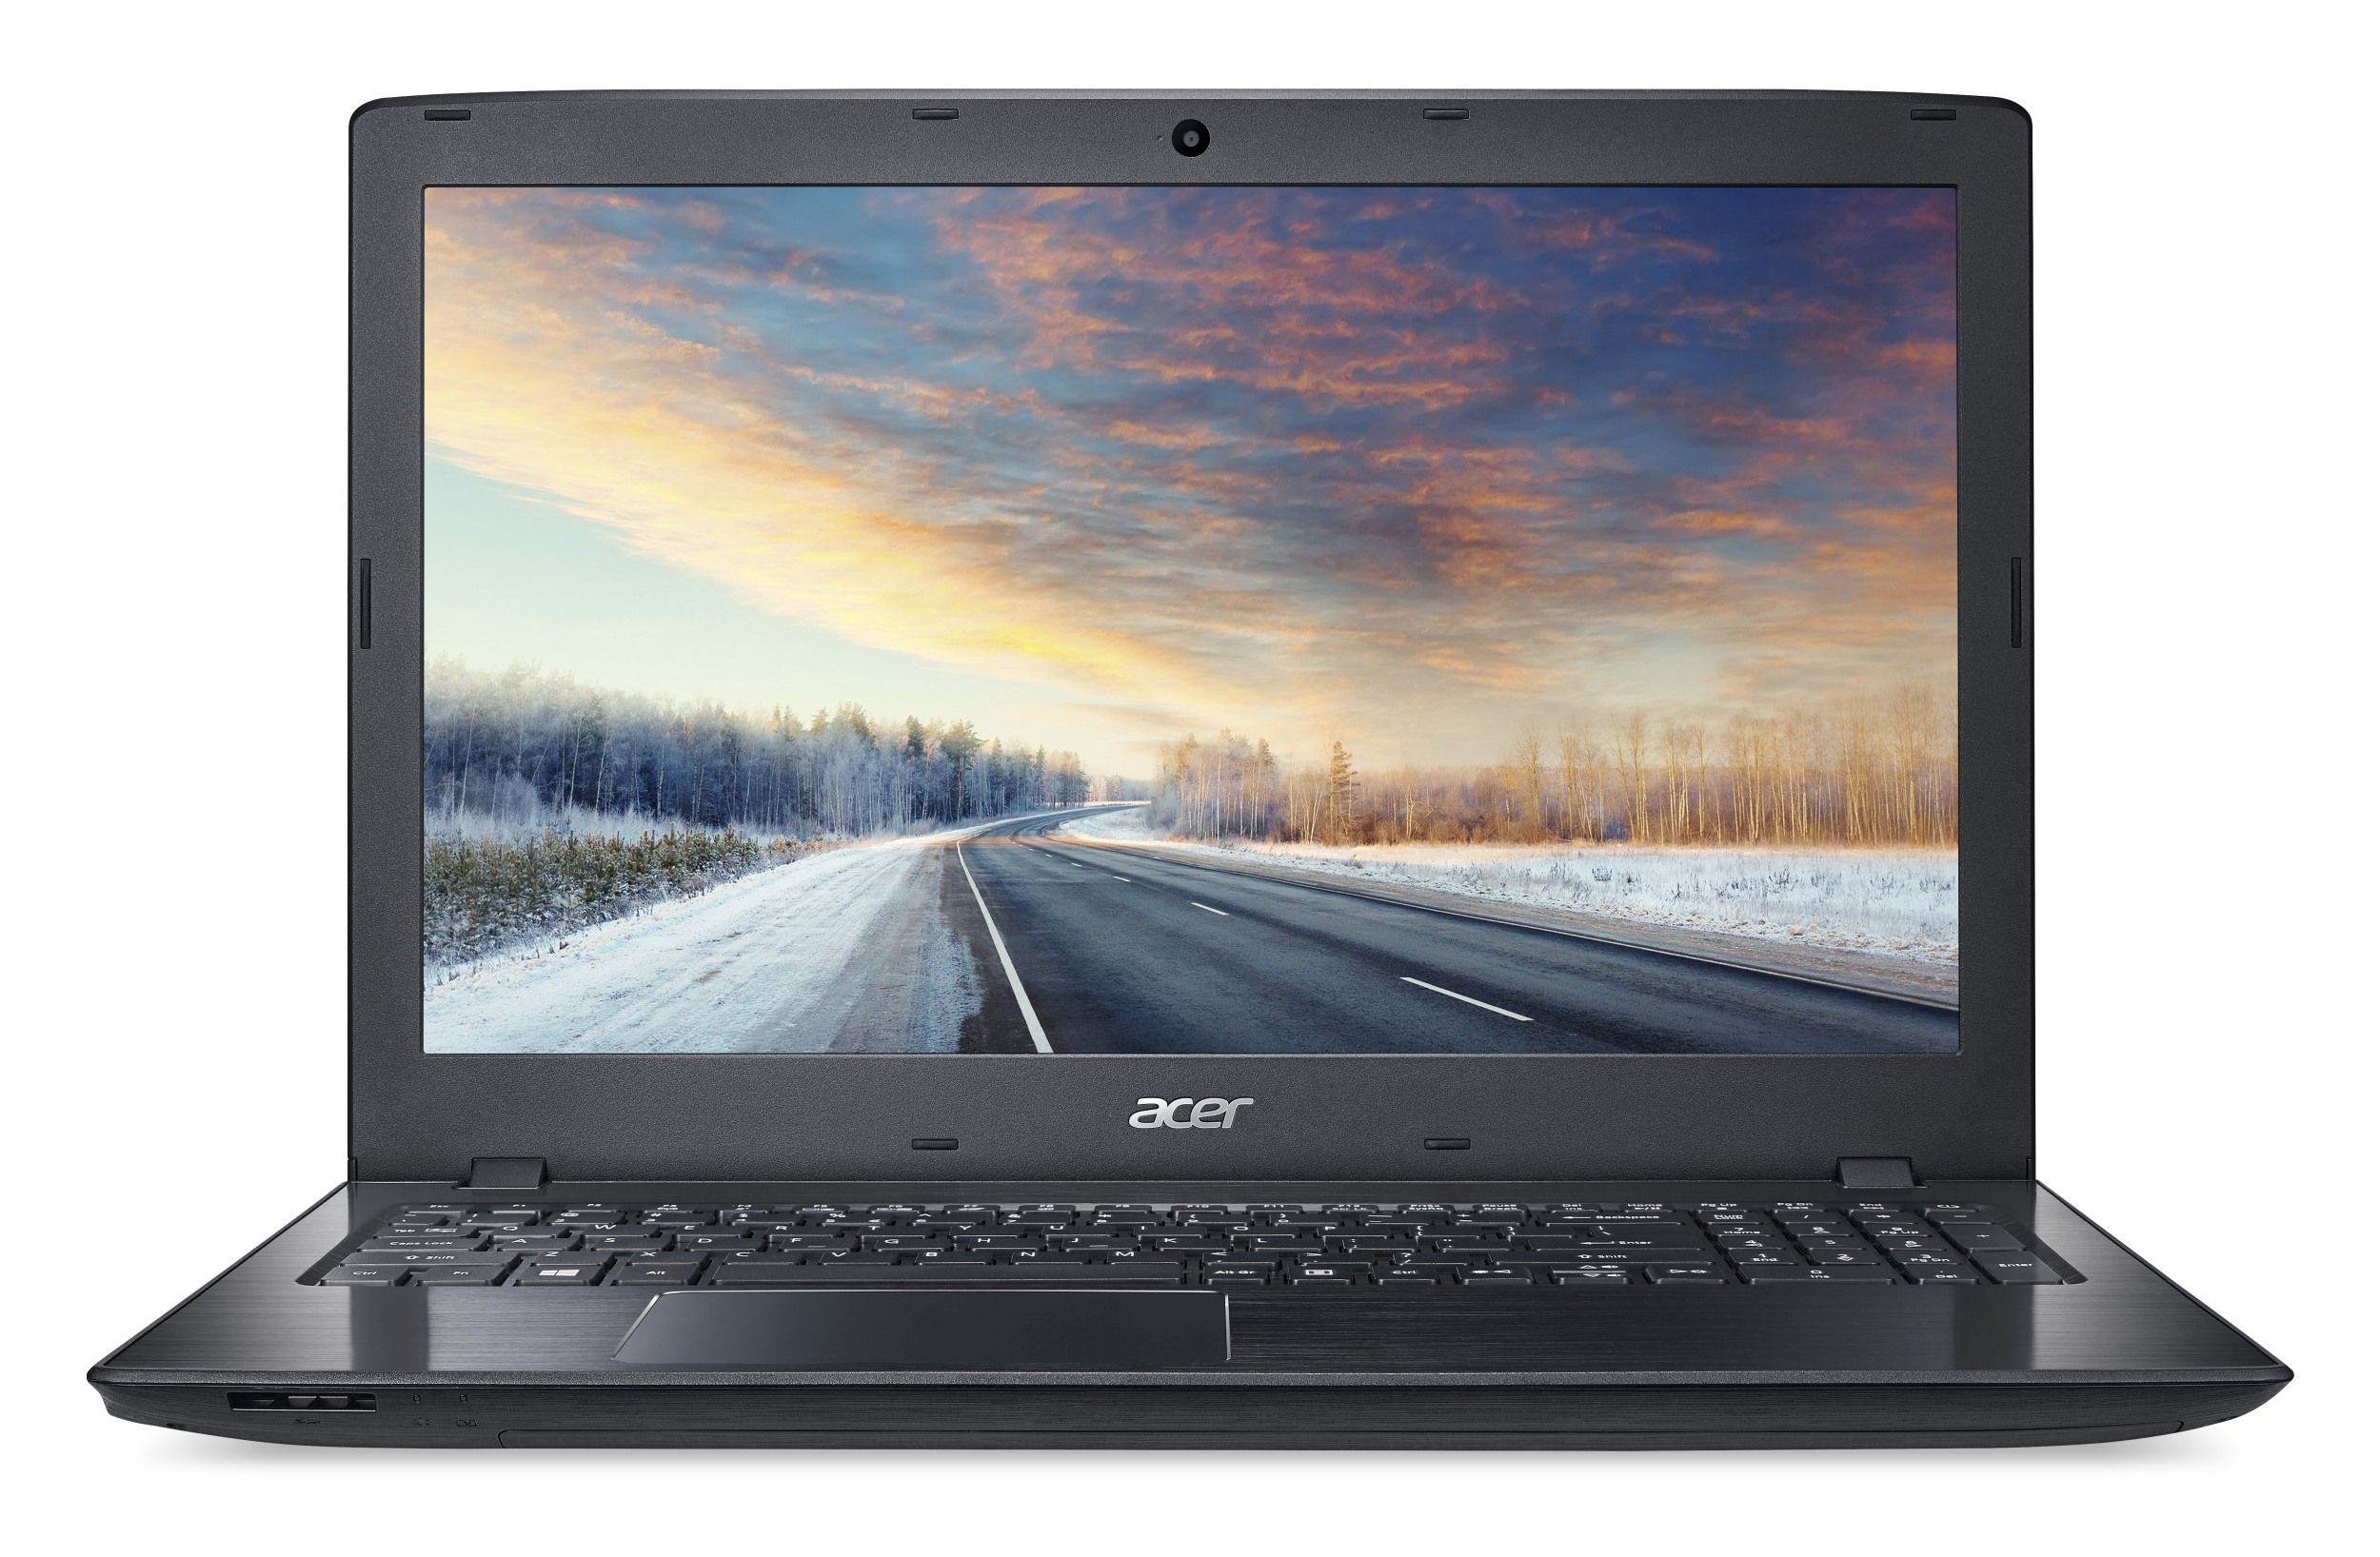 "AcerTravelMate P259-M-3482 i3-6100U/4GB+N/500GB HDD+8GB SSHD+N/DVDRW/HD Graphics/15.6""FHD LED matný/BT/W7 Pro+W10 Pro/Black"